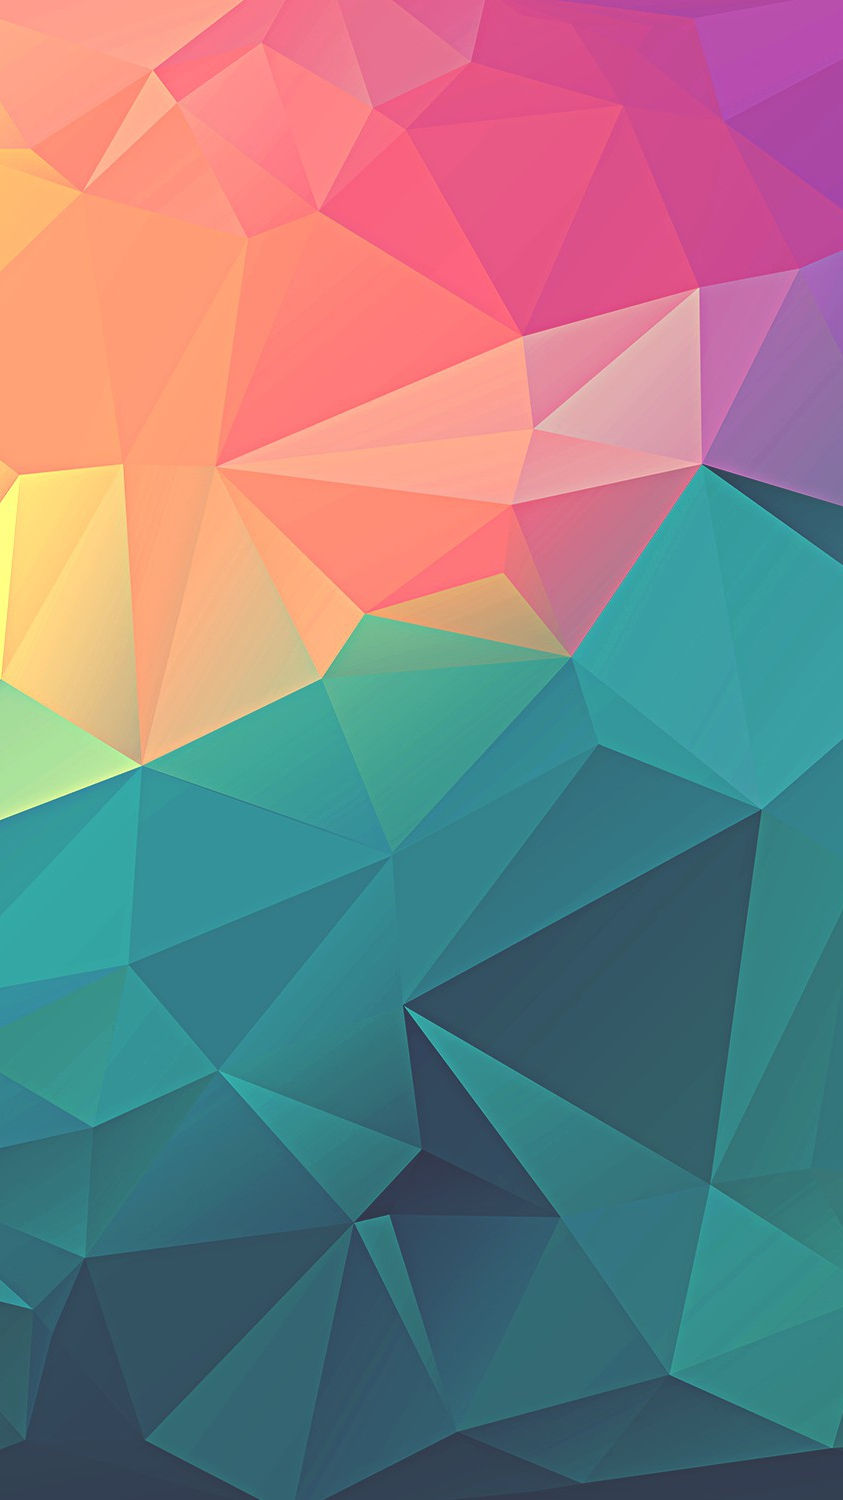 Colorful Polygon Geometric Art IPhone Wallpaper IPhone